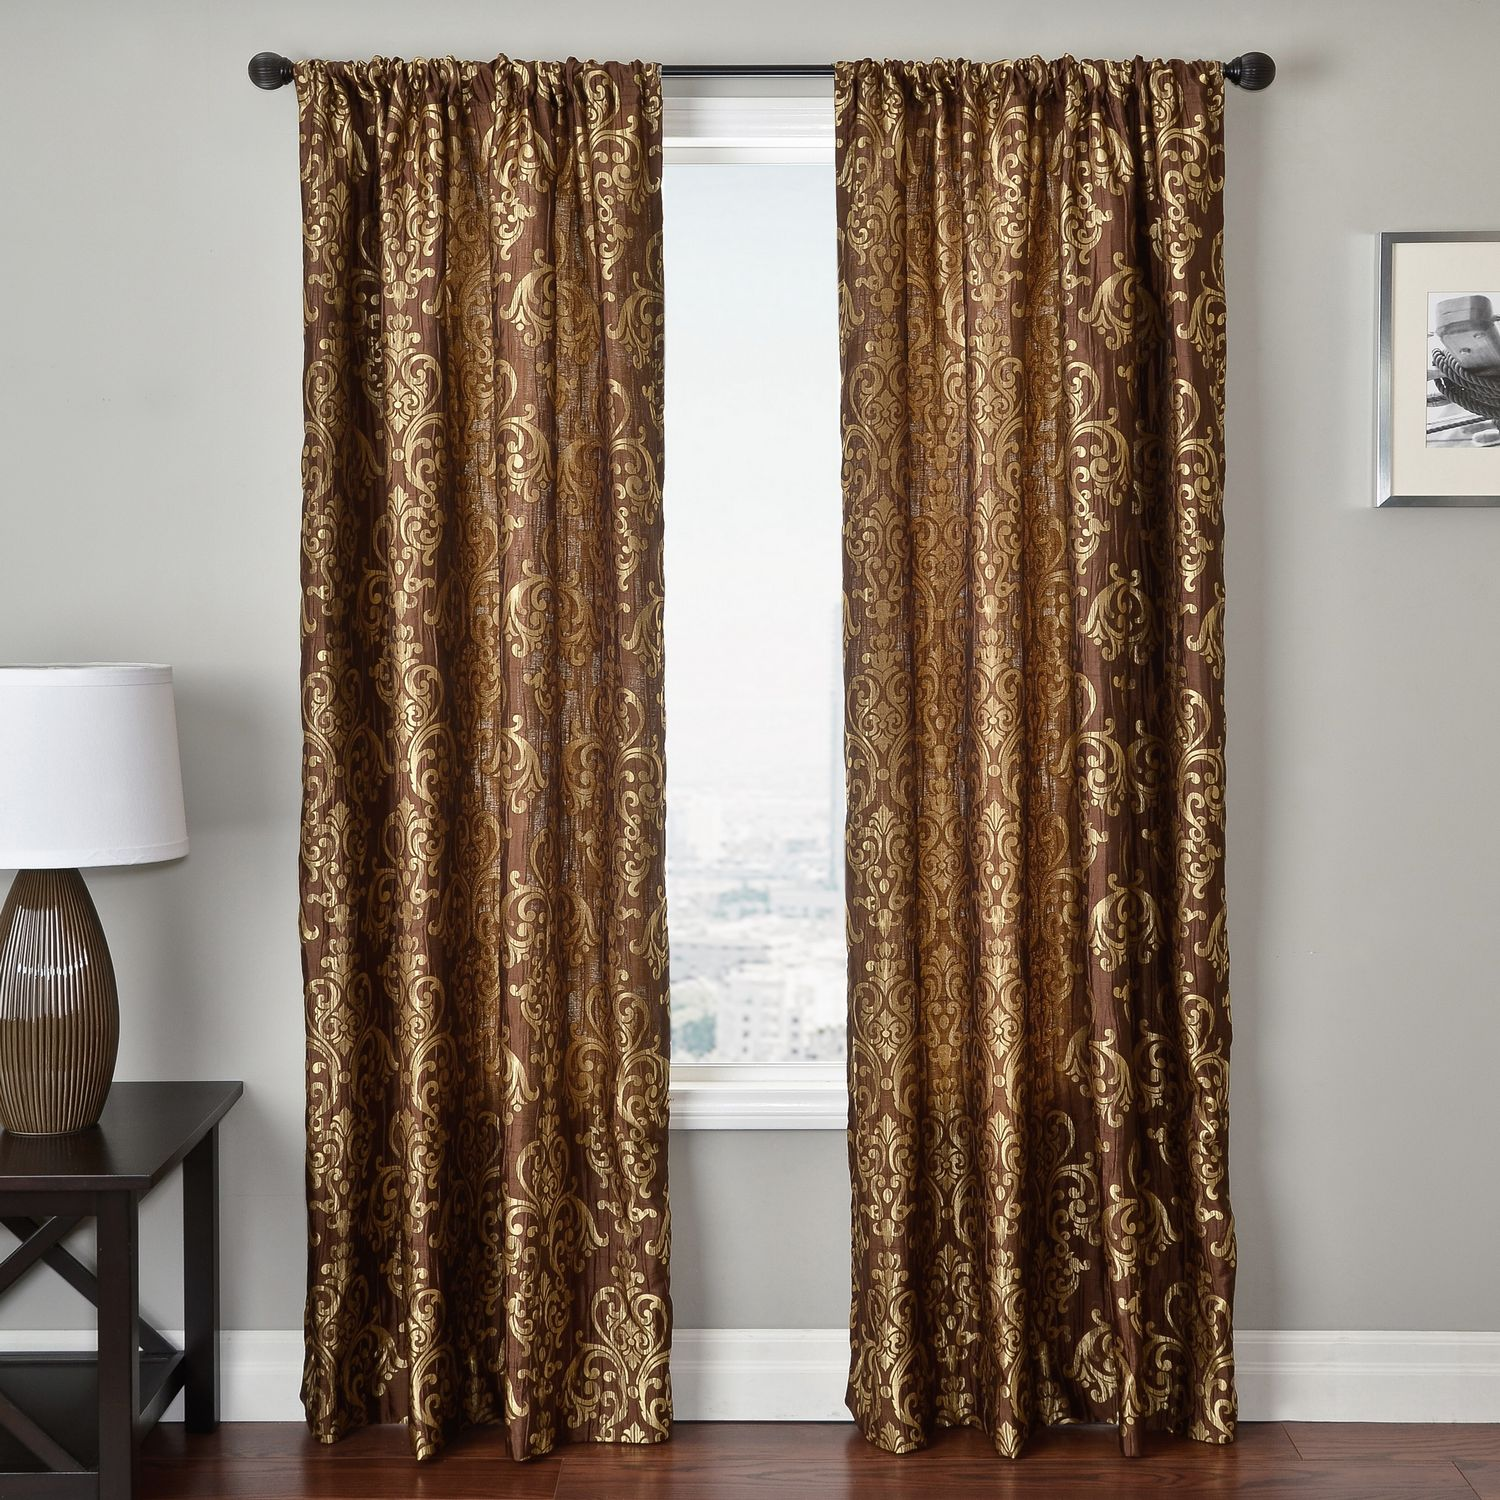 valance curtain rod x homes gold ip gardens and com better walmart trellis pocket panels curtains